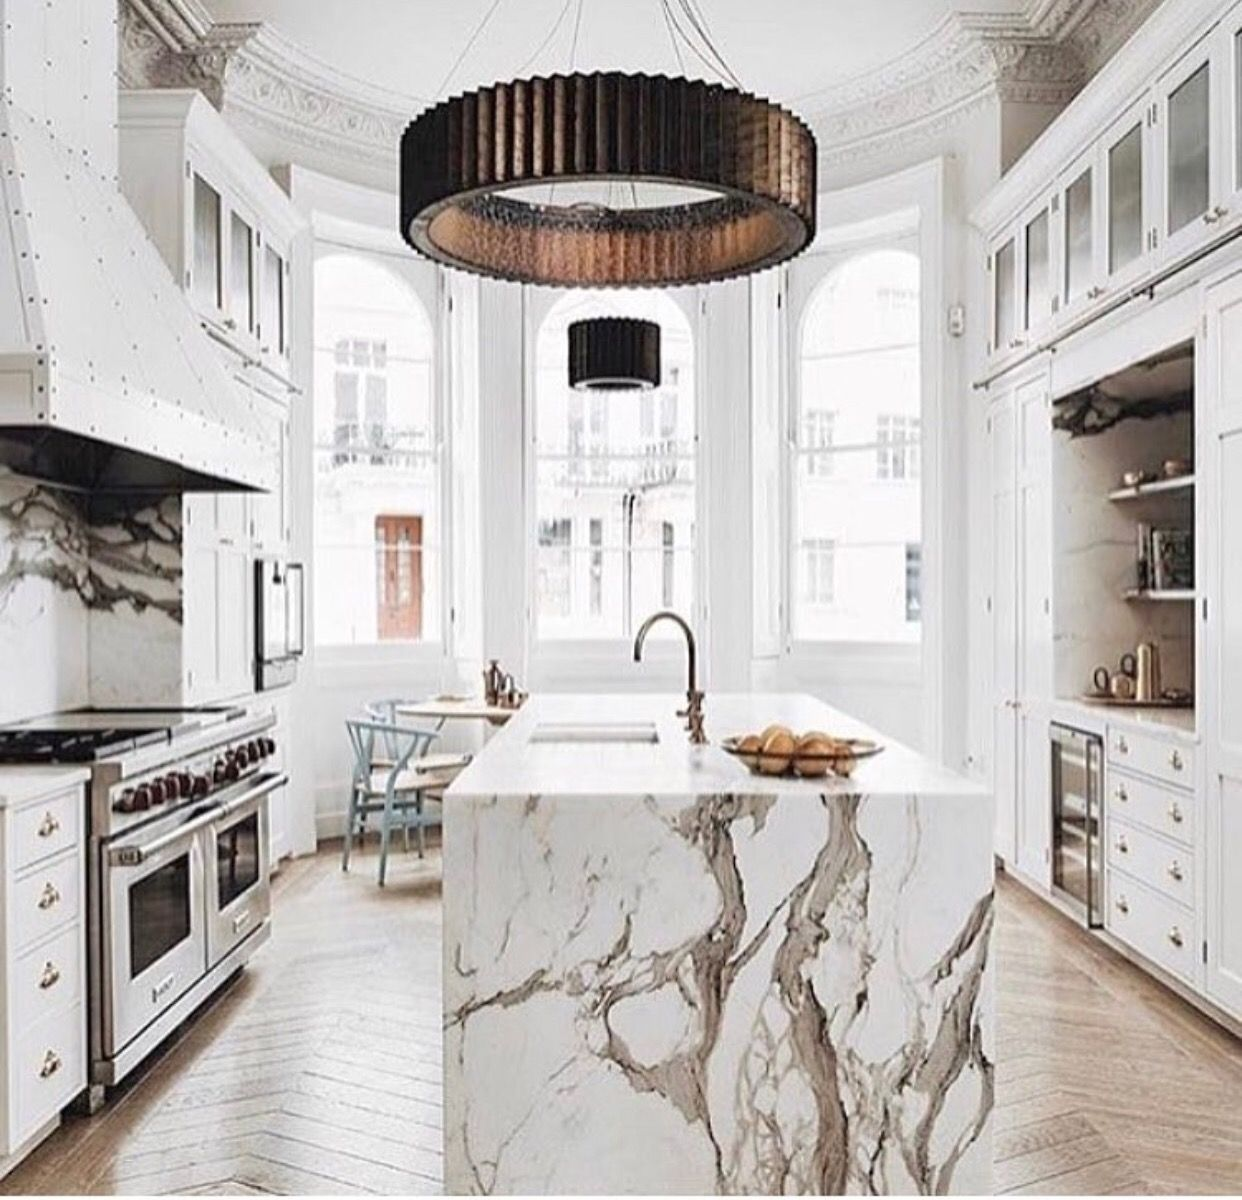 Unique Kitchen Design And Layout Marble Island White Color Scheme